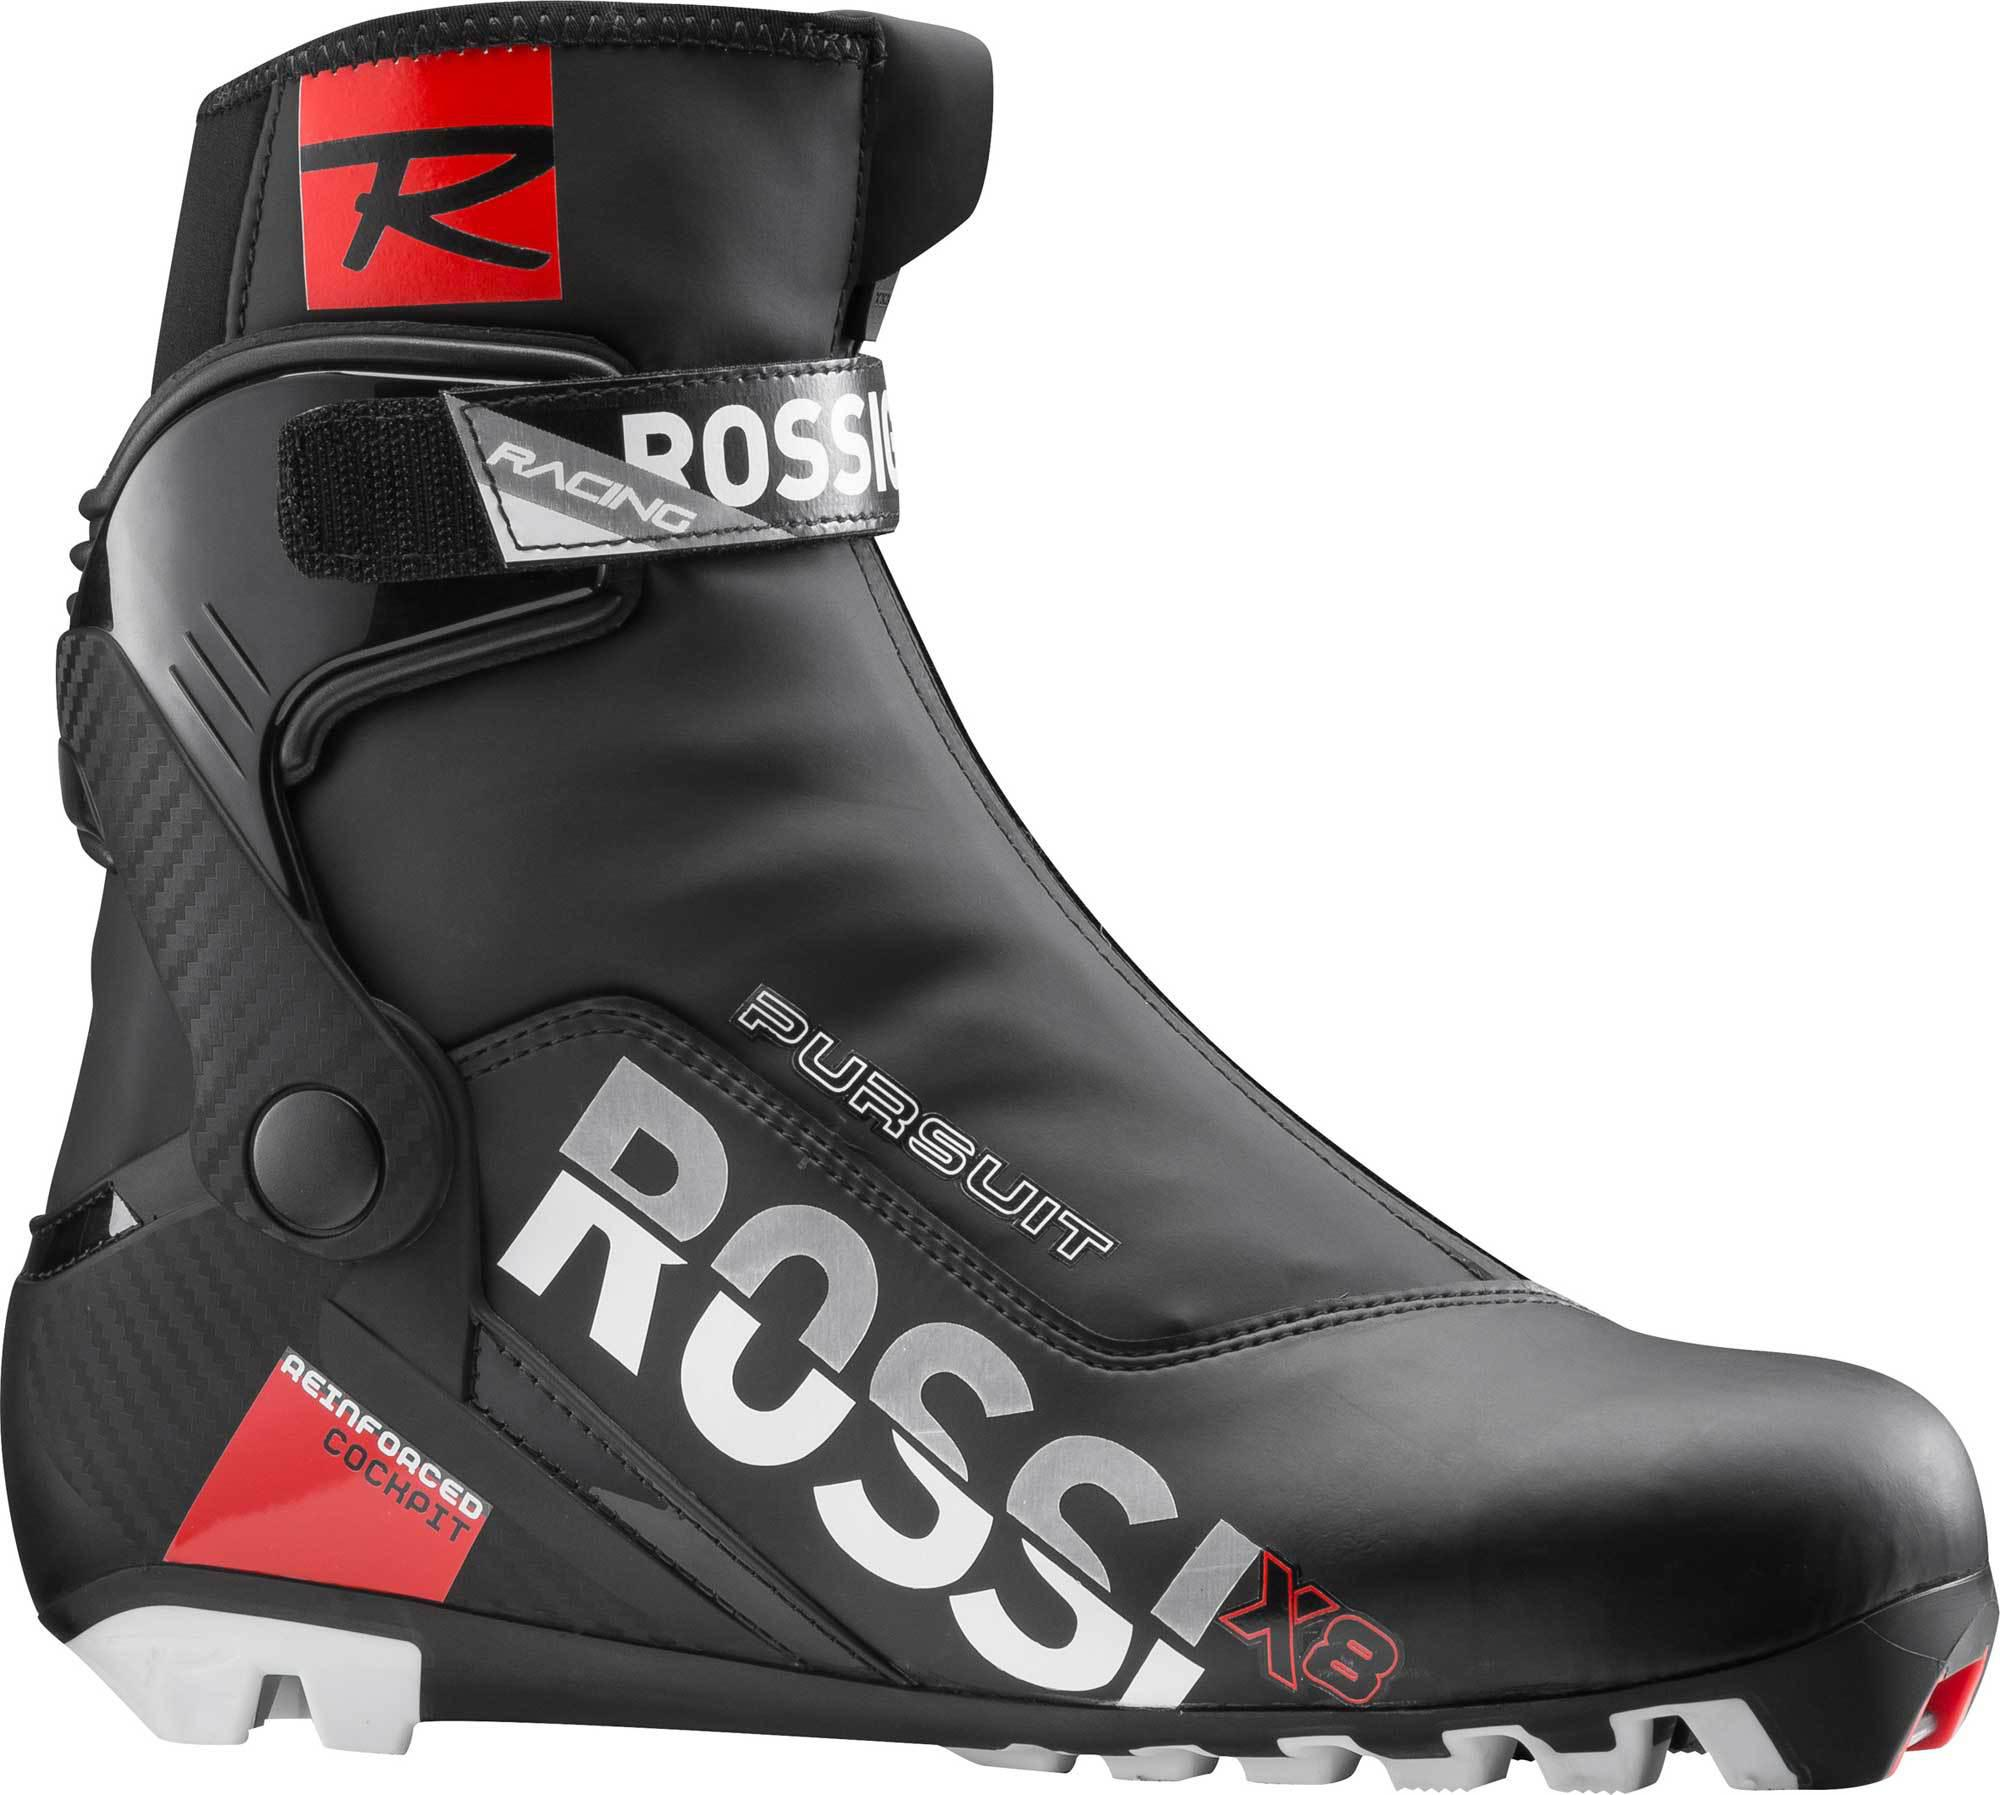 ROSSIGNOL X-8 PURSUIT 18/19